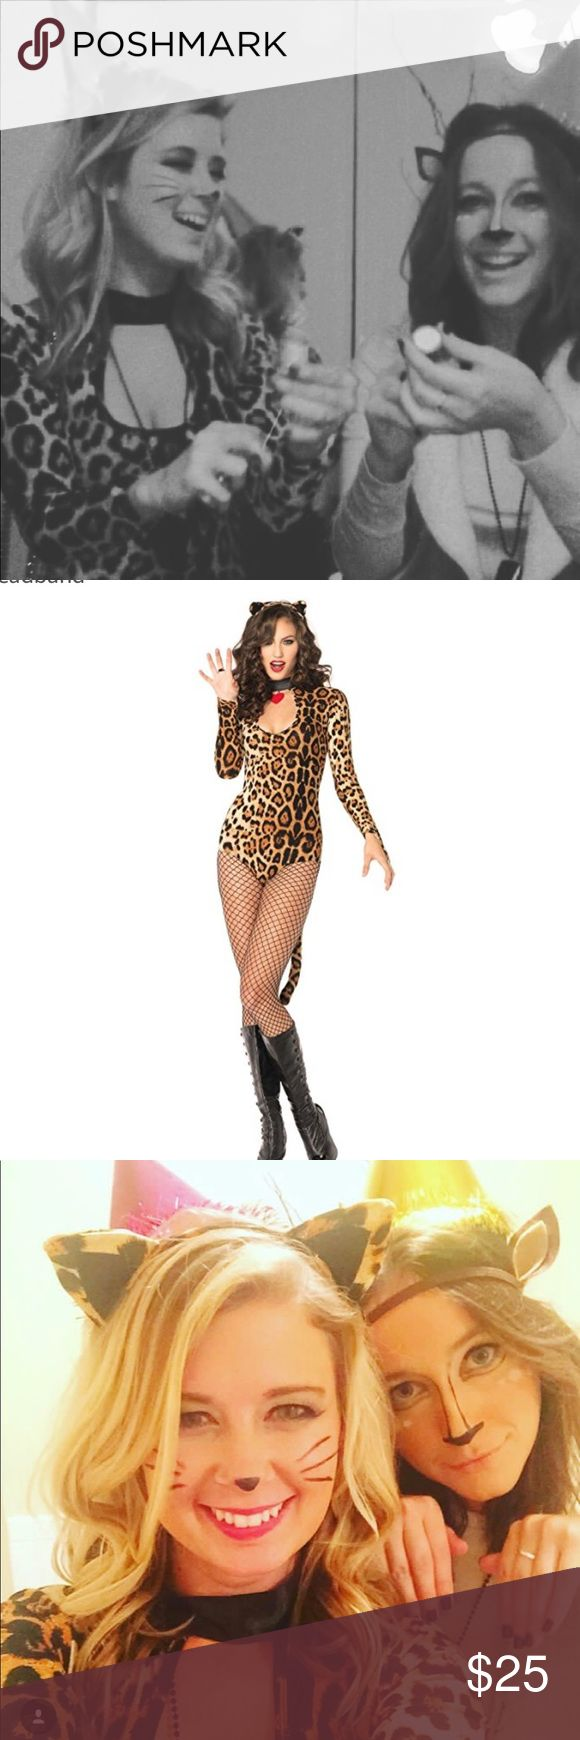 "Cheetah costume with ears It's an XS one piece cheetah costume (the leotard part) with choker neck and attached tail. It also comes with the cheetah ears. I wore this once on Halloween and it's in perfect condition and clean. The only thing different from the pic is that I cut off the little heart charm on the choker part (as seen in the second and third pic). Does not come with the fishnets.  Throw on a party hat and be a ""party animal""! I wore a black skirt over the leotard for a more…"